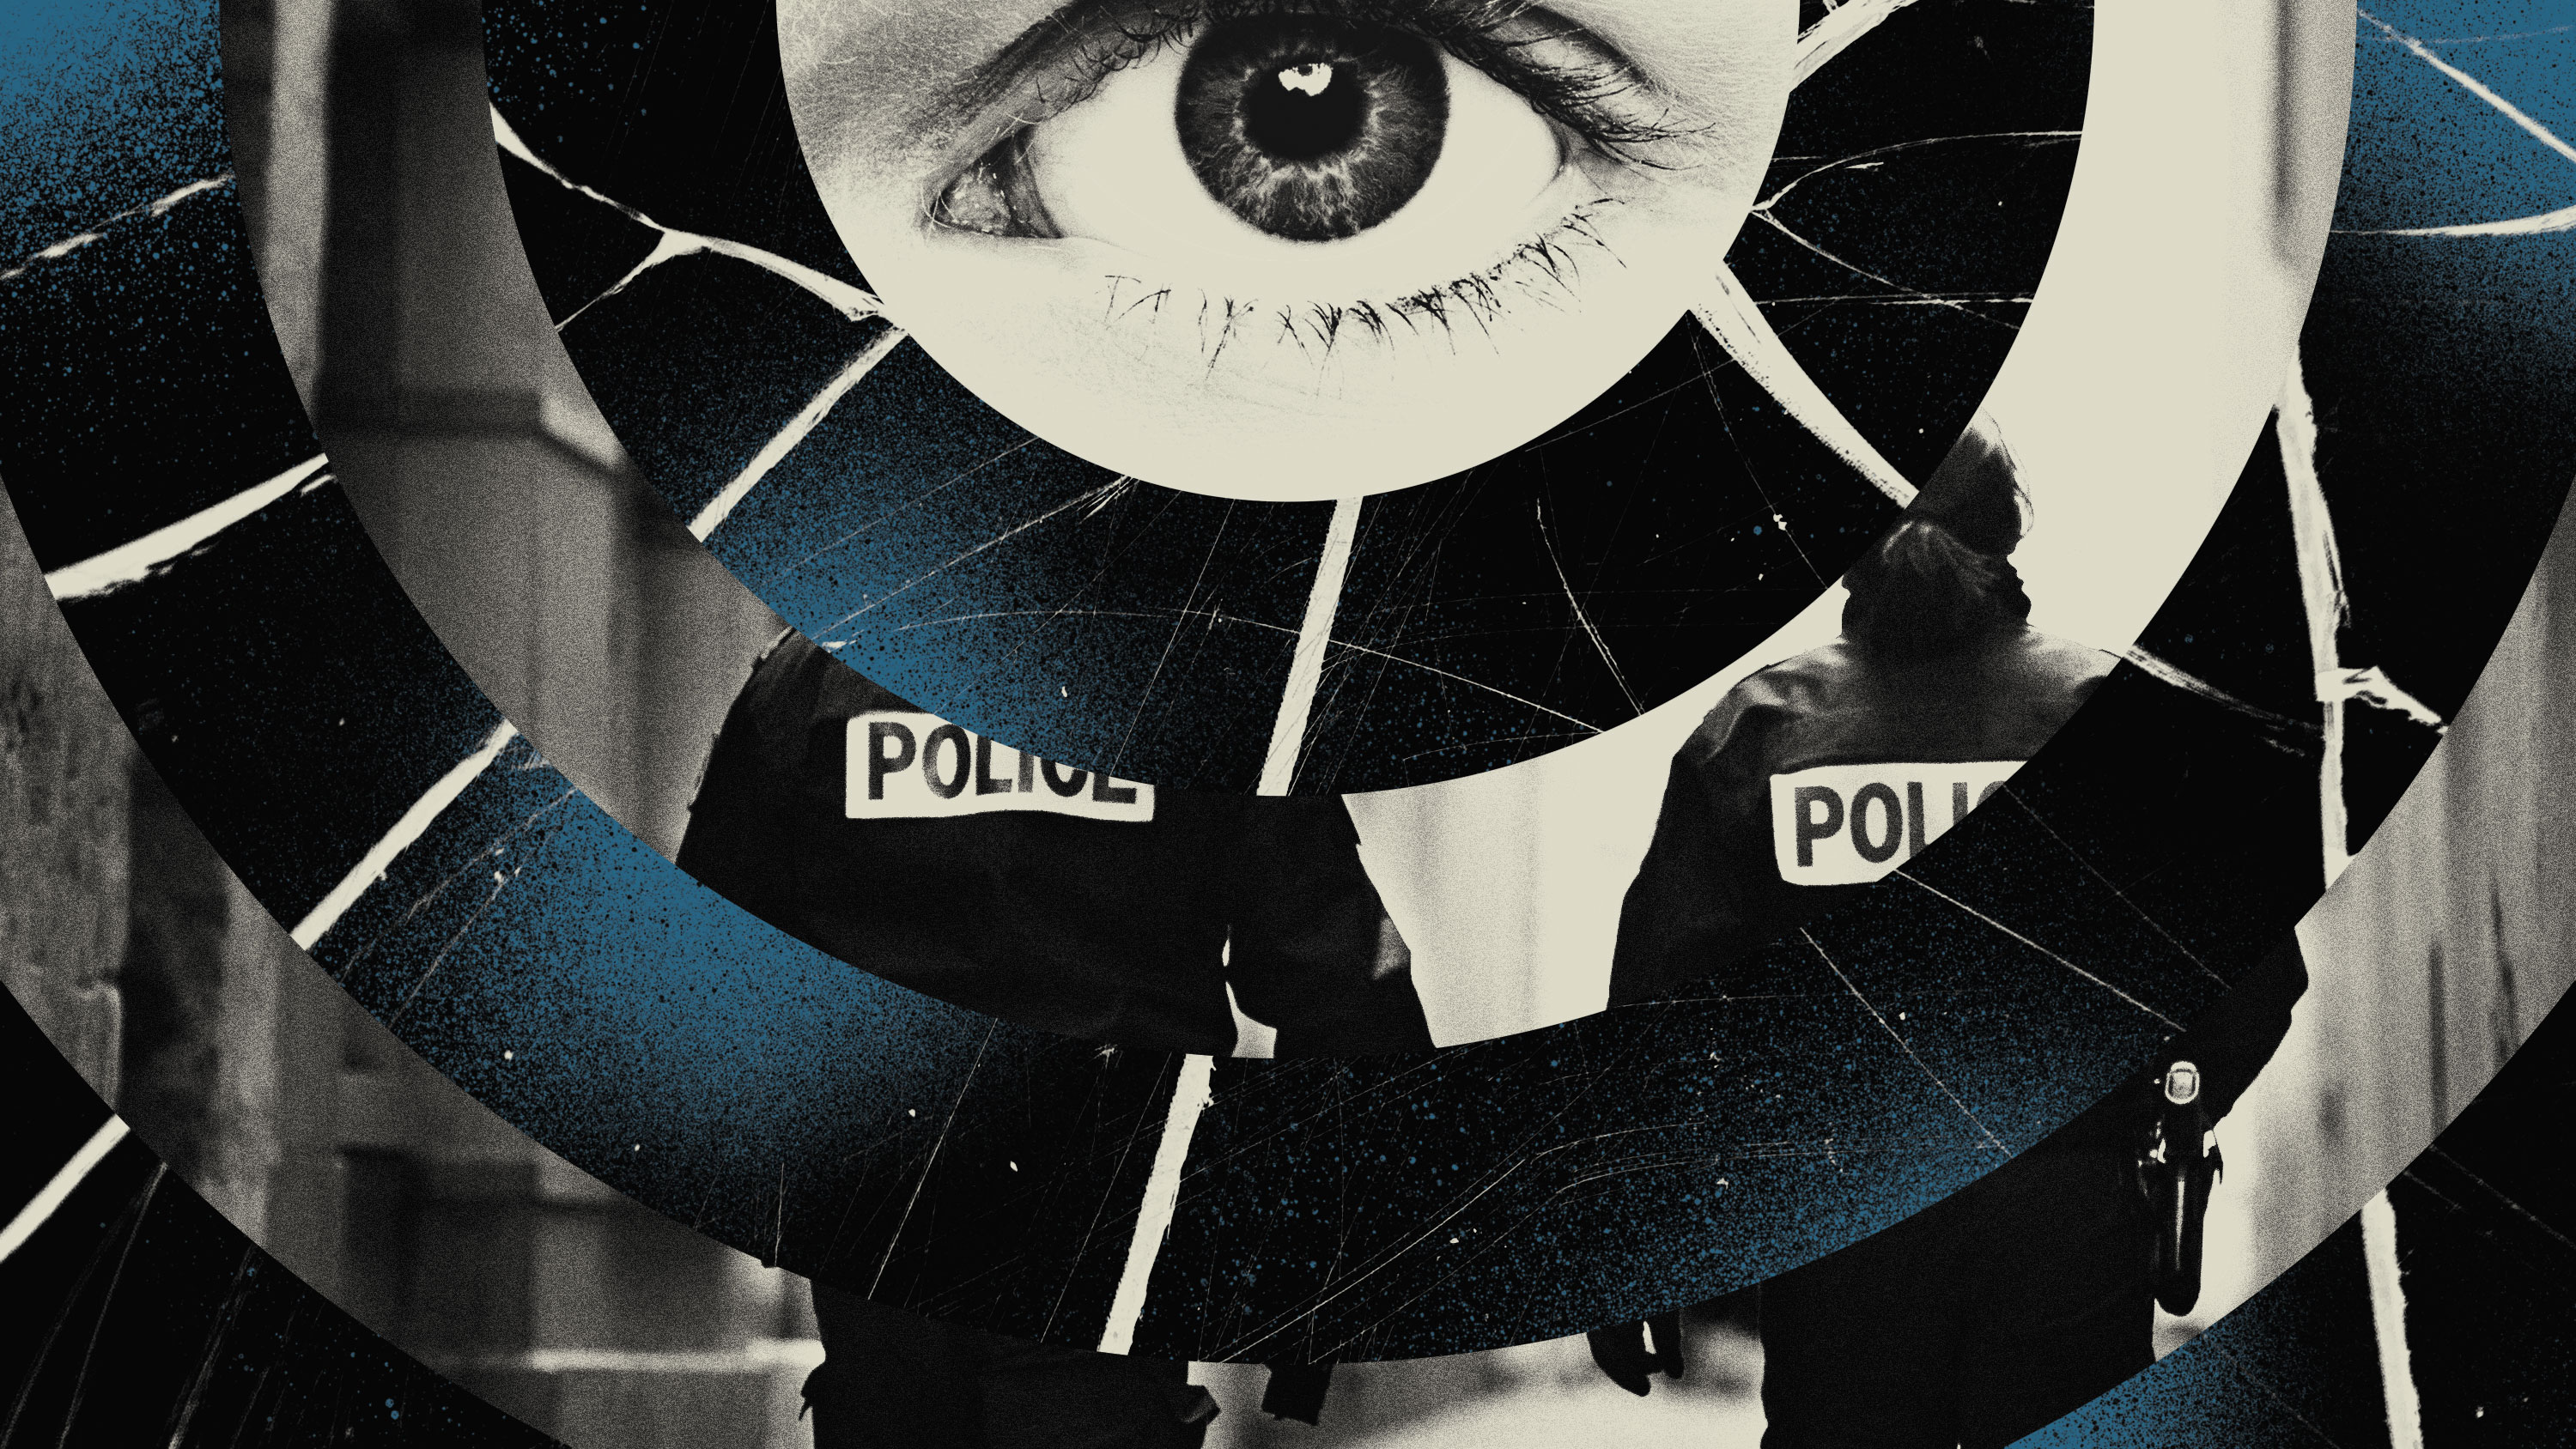 conceptual illustration showing layers of imagery that reference surveillance, policing, and domestic violence